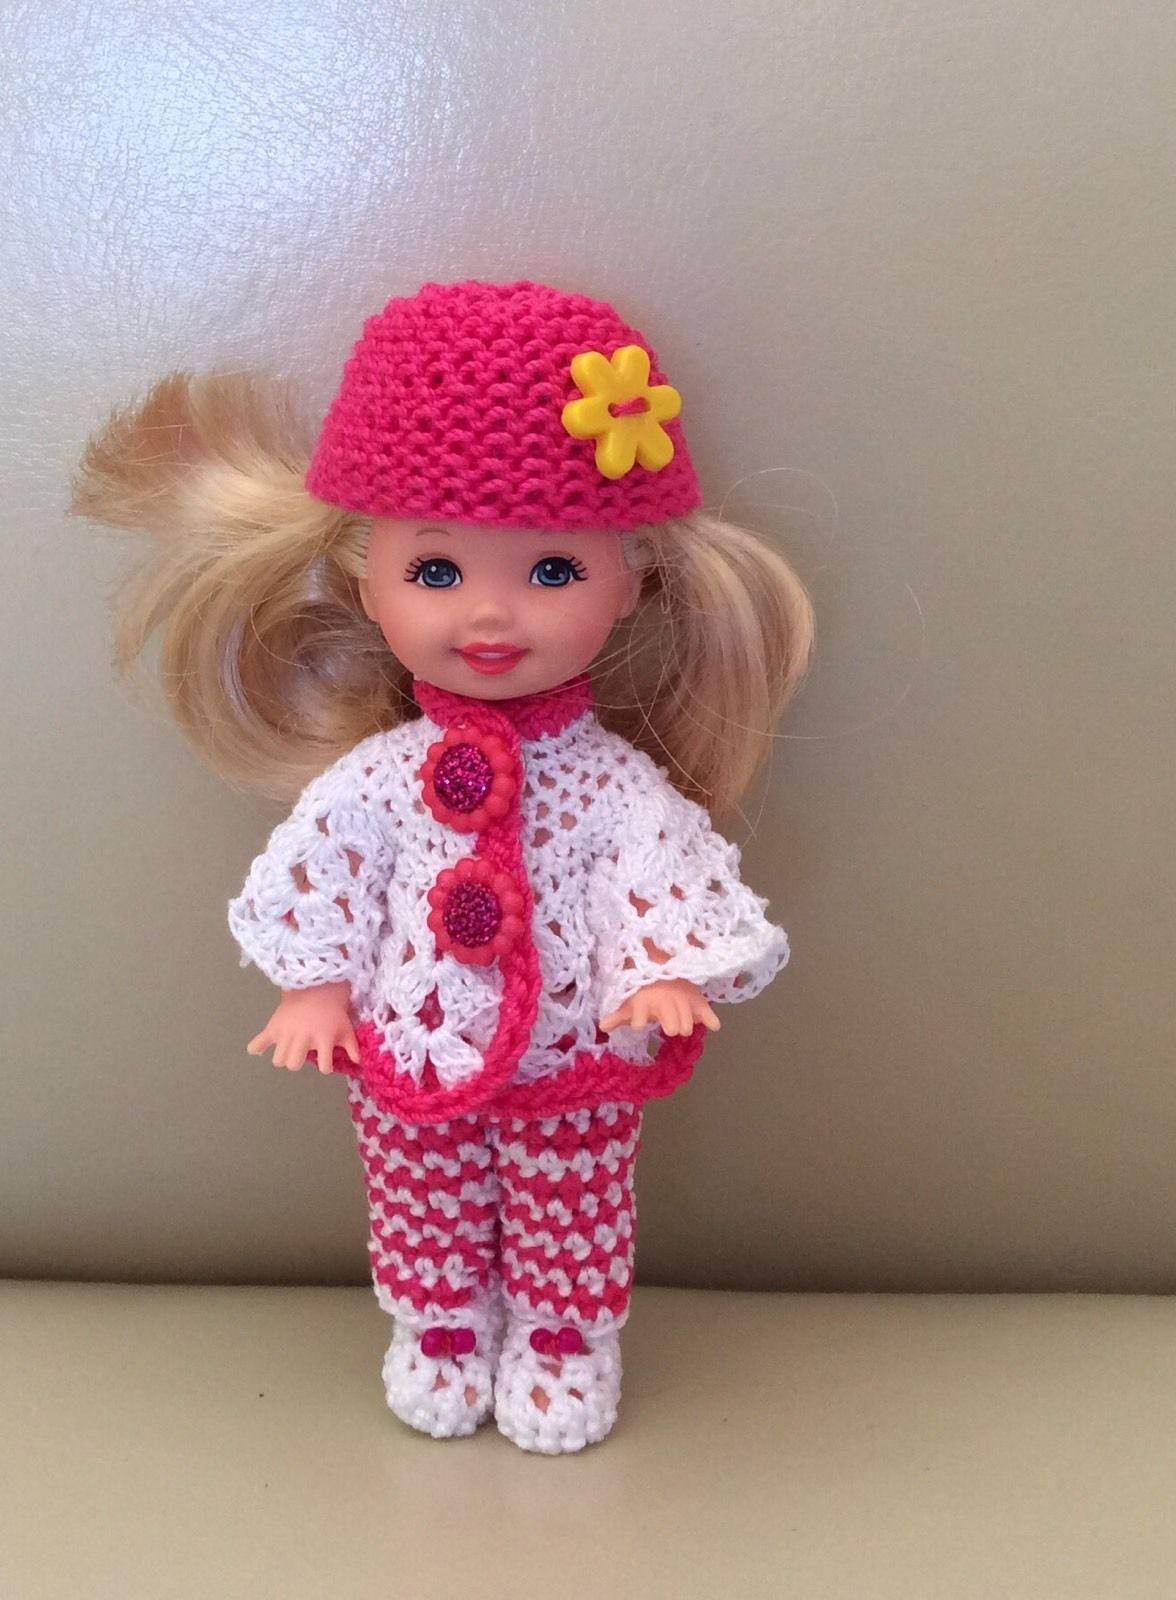 Crocheted Outfit for 41 2 Dolls Kelly and Same Size February   eBay